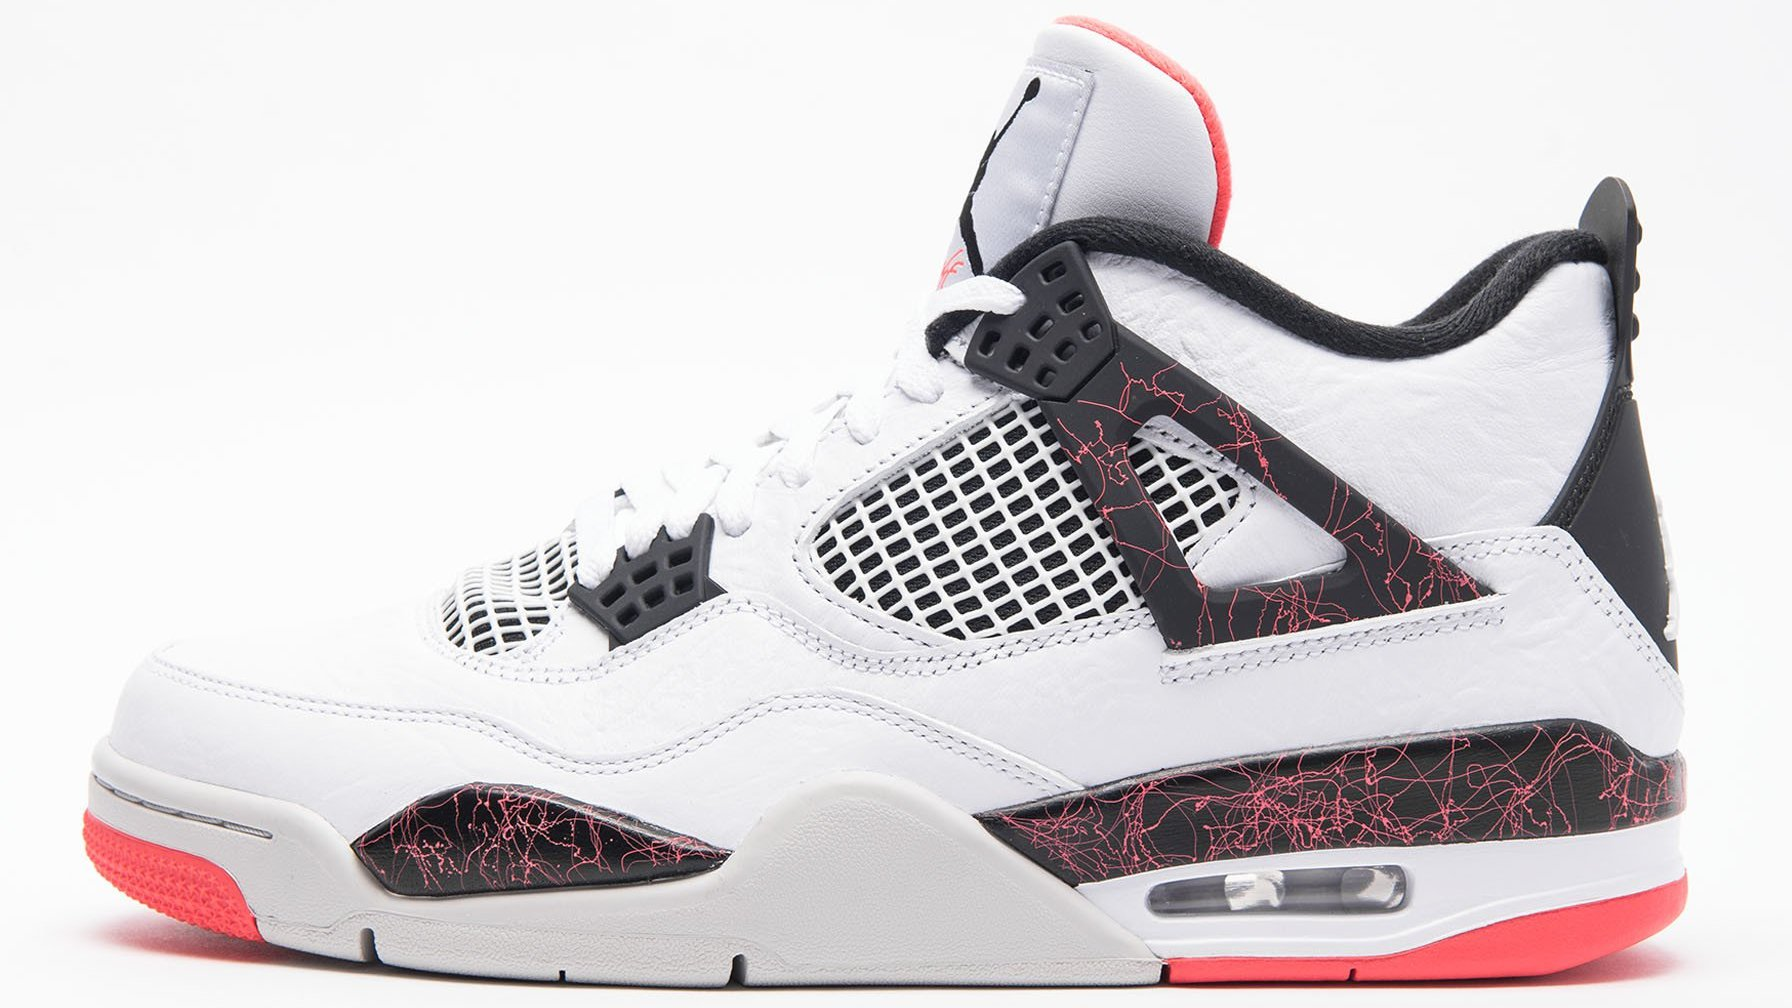 8ed7f550150407 Air Jordan 4 Retro  White Black-Light Crimson-Pale Citron  308497-116  Release Date